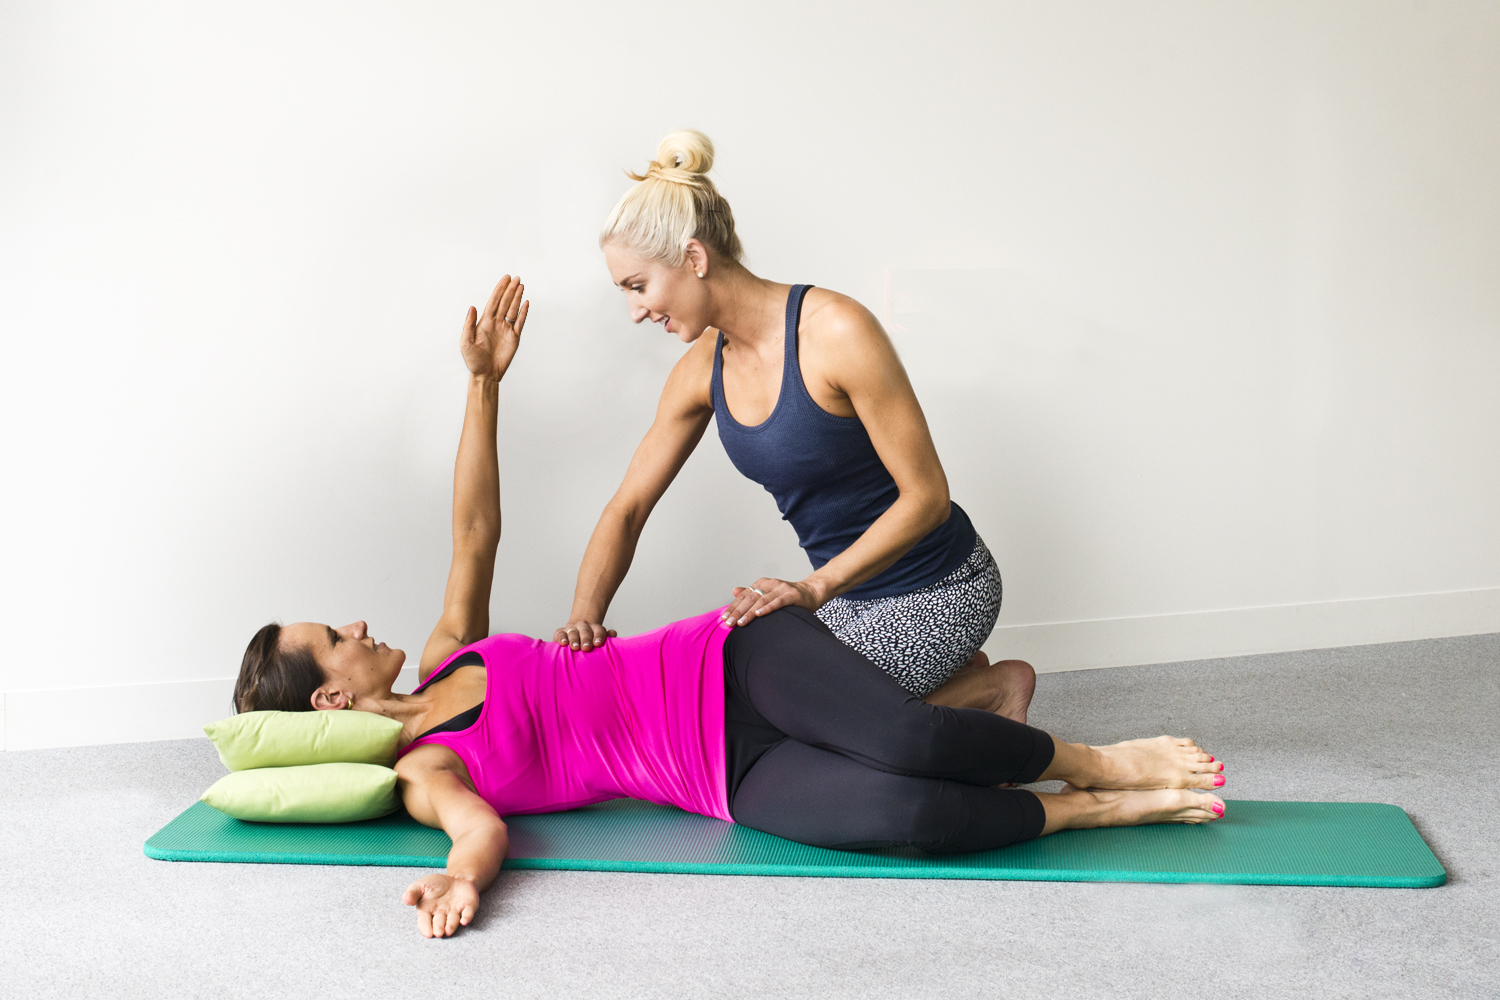 APPI Pilates Hip twist level 2 with a modification